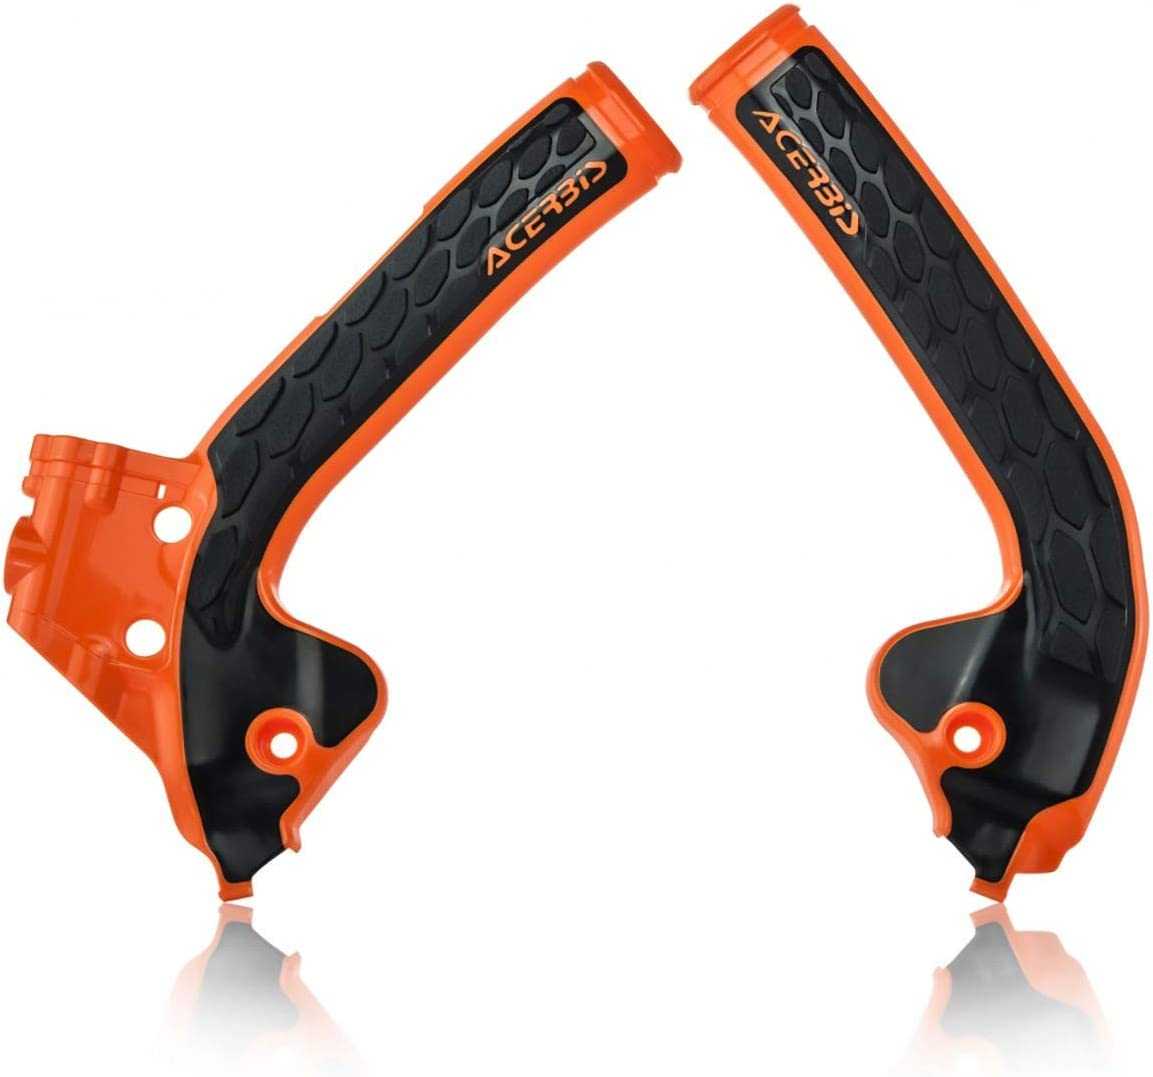 Acerbis X-Grip Frame Guards 16 KTM Orange//Black for KTM 250 XC-W E-Start 2017-2018